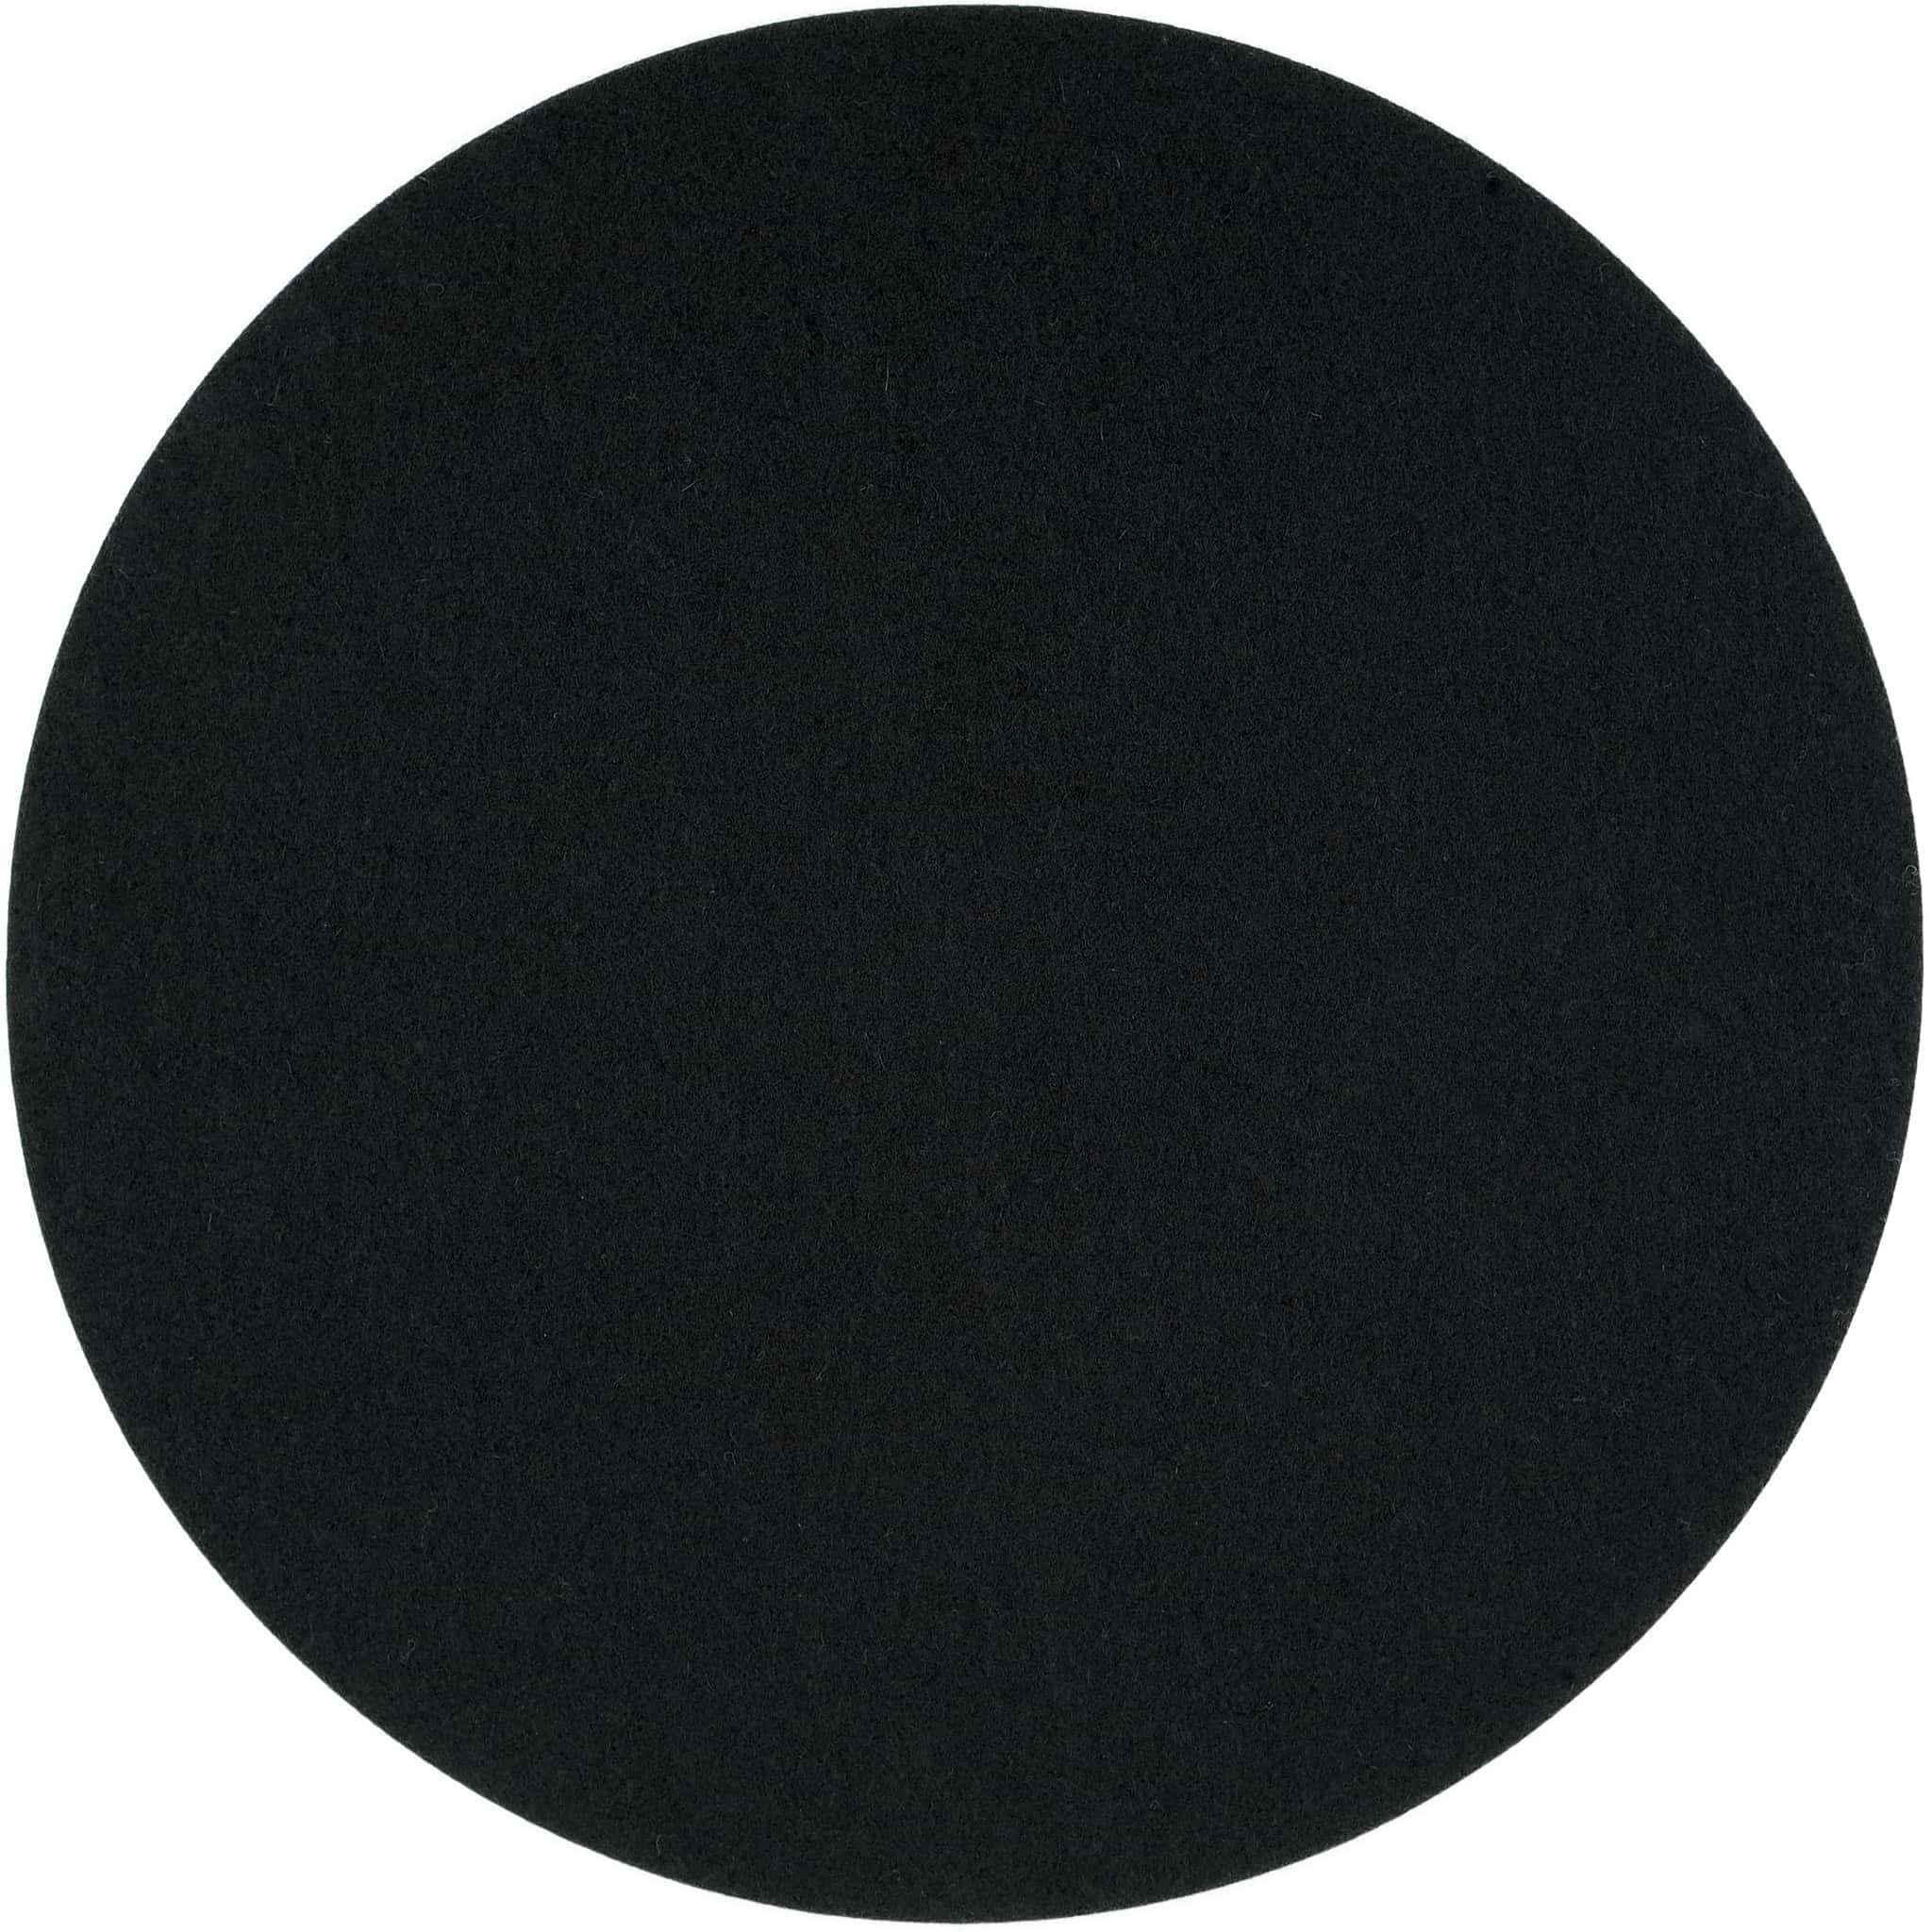 Round Felt Placemat in Black by Felt & Co. 153502 looking at Back